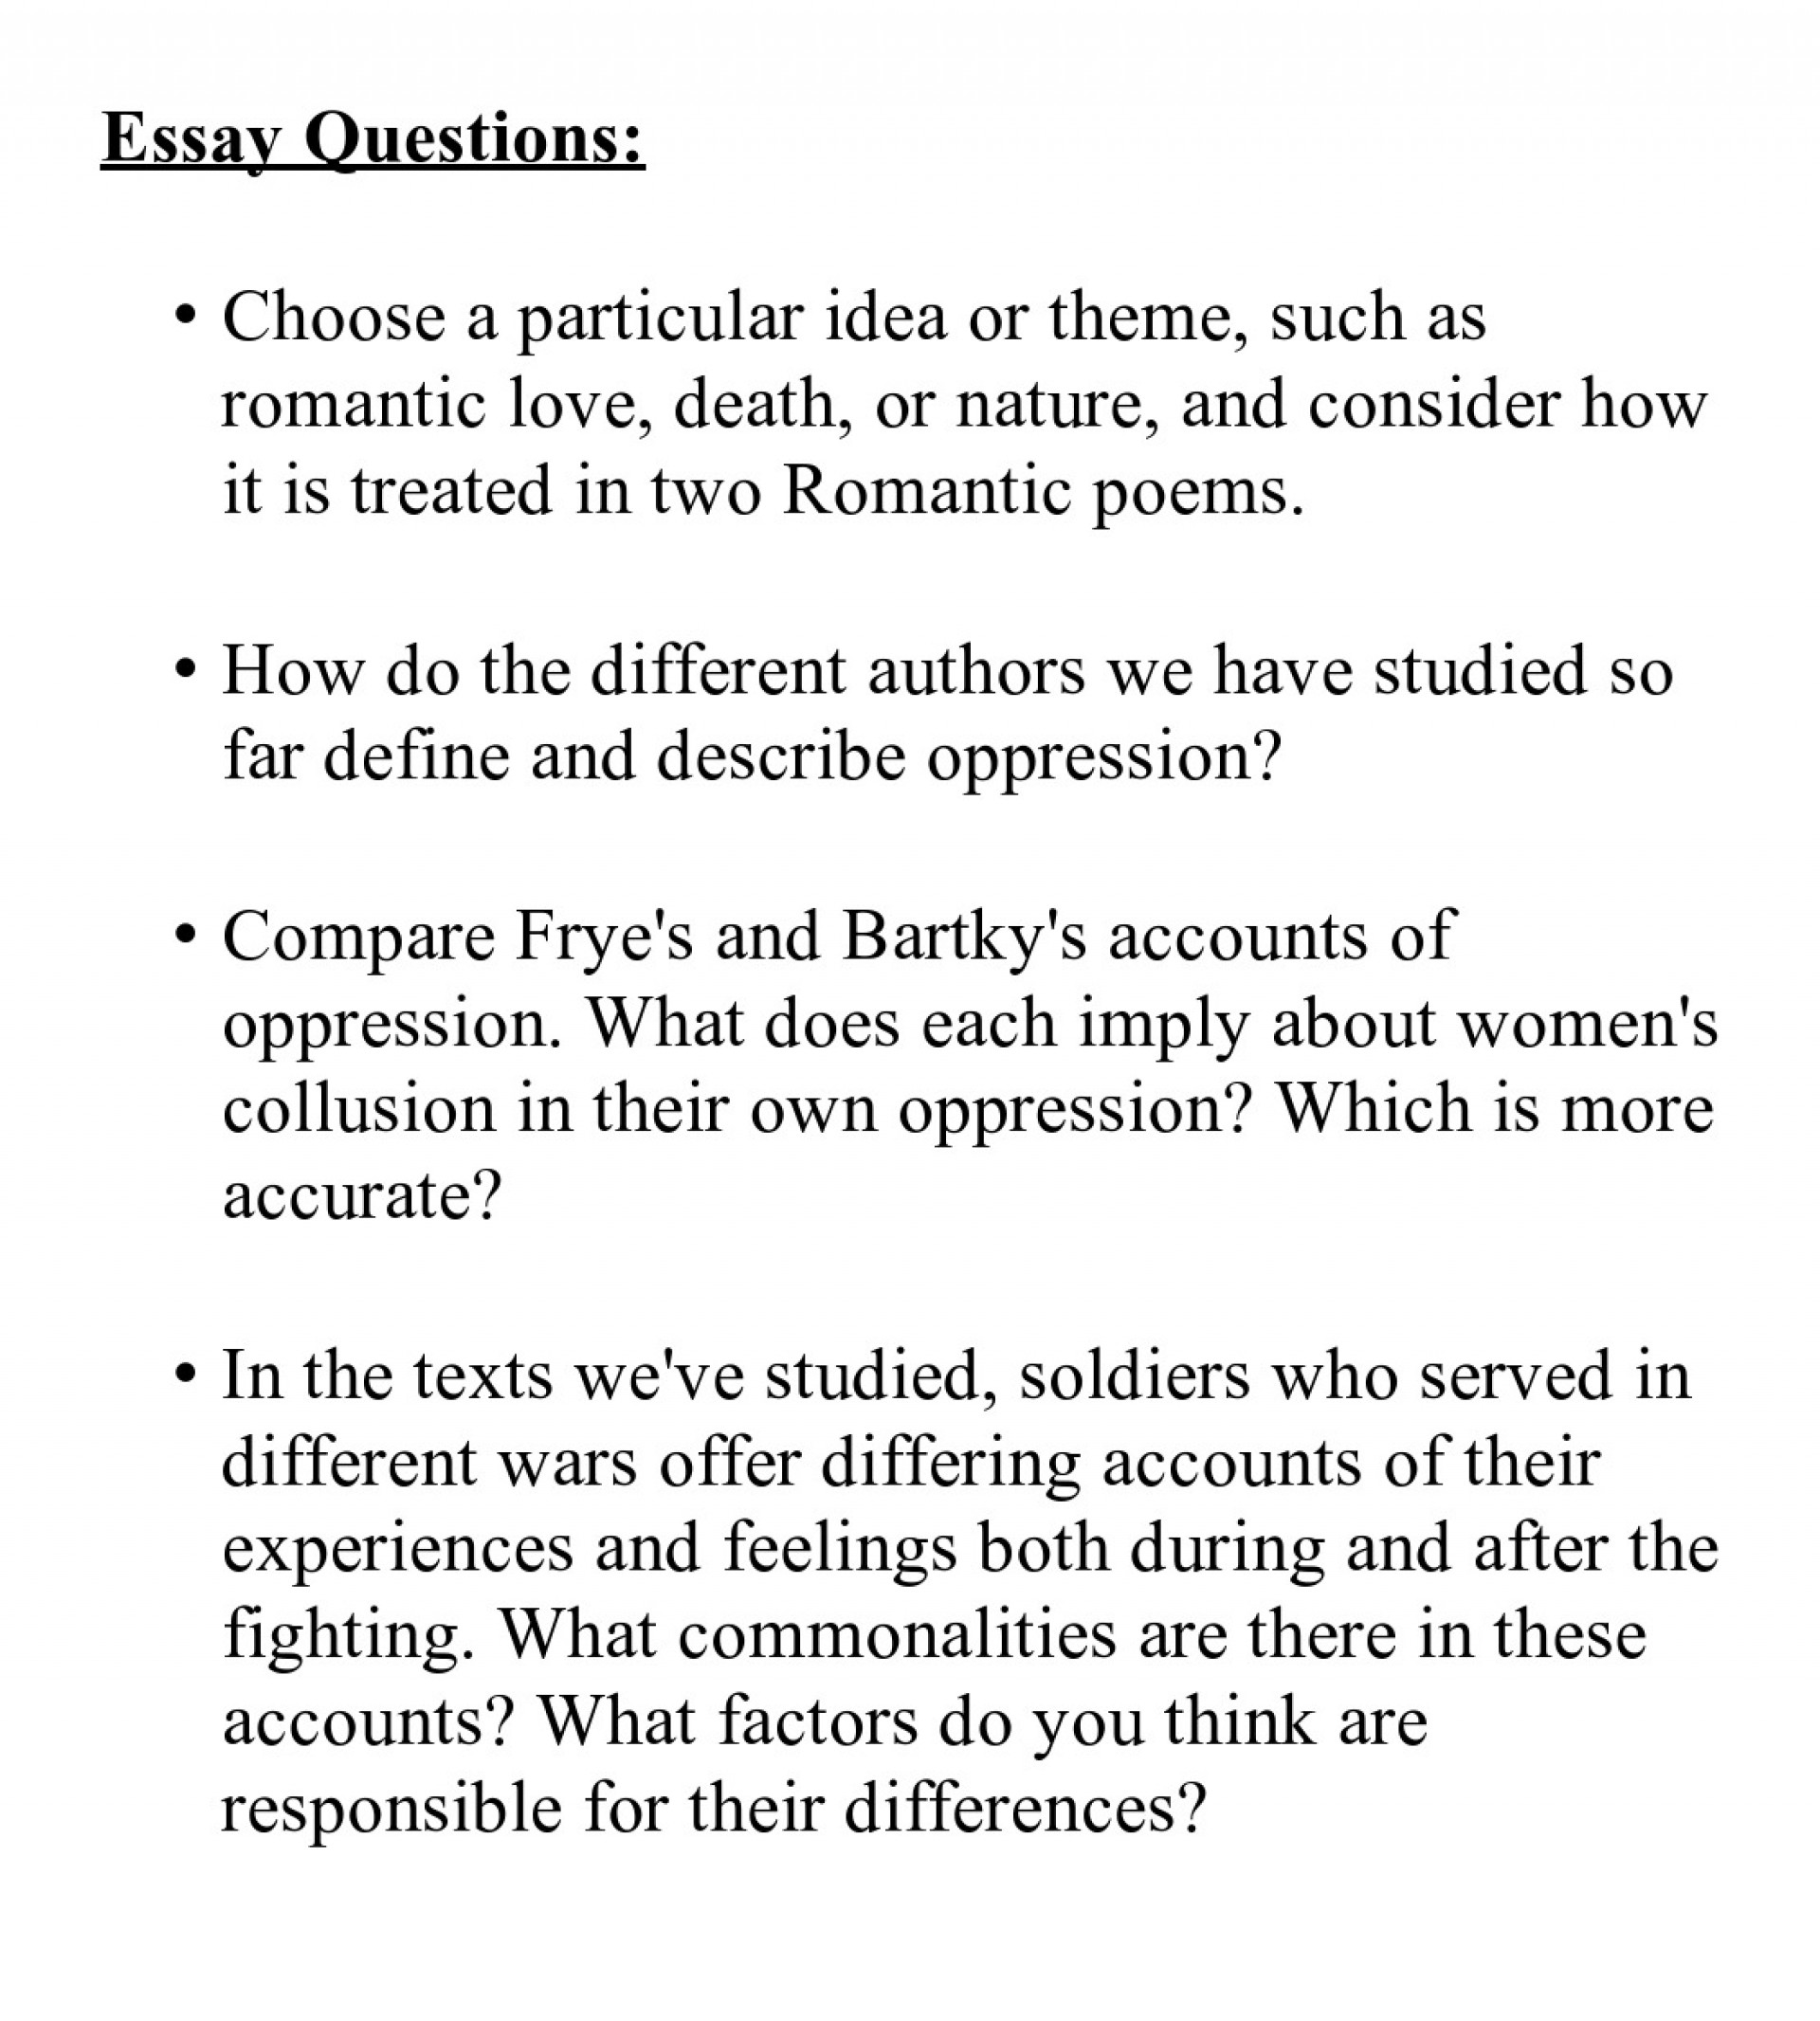 001 Essays Essay Example What Is An Frightening Question Type Modified Questions 1920